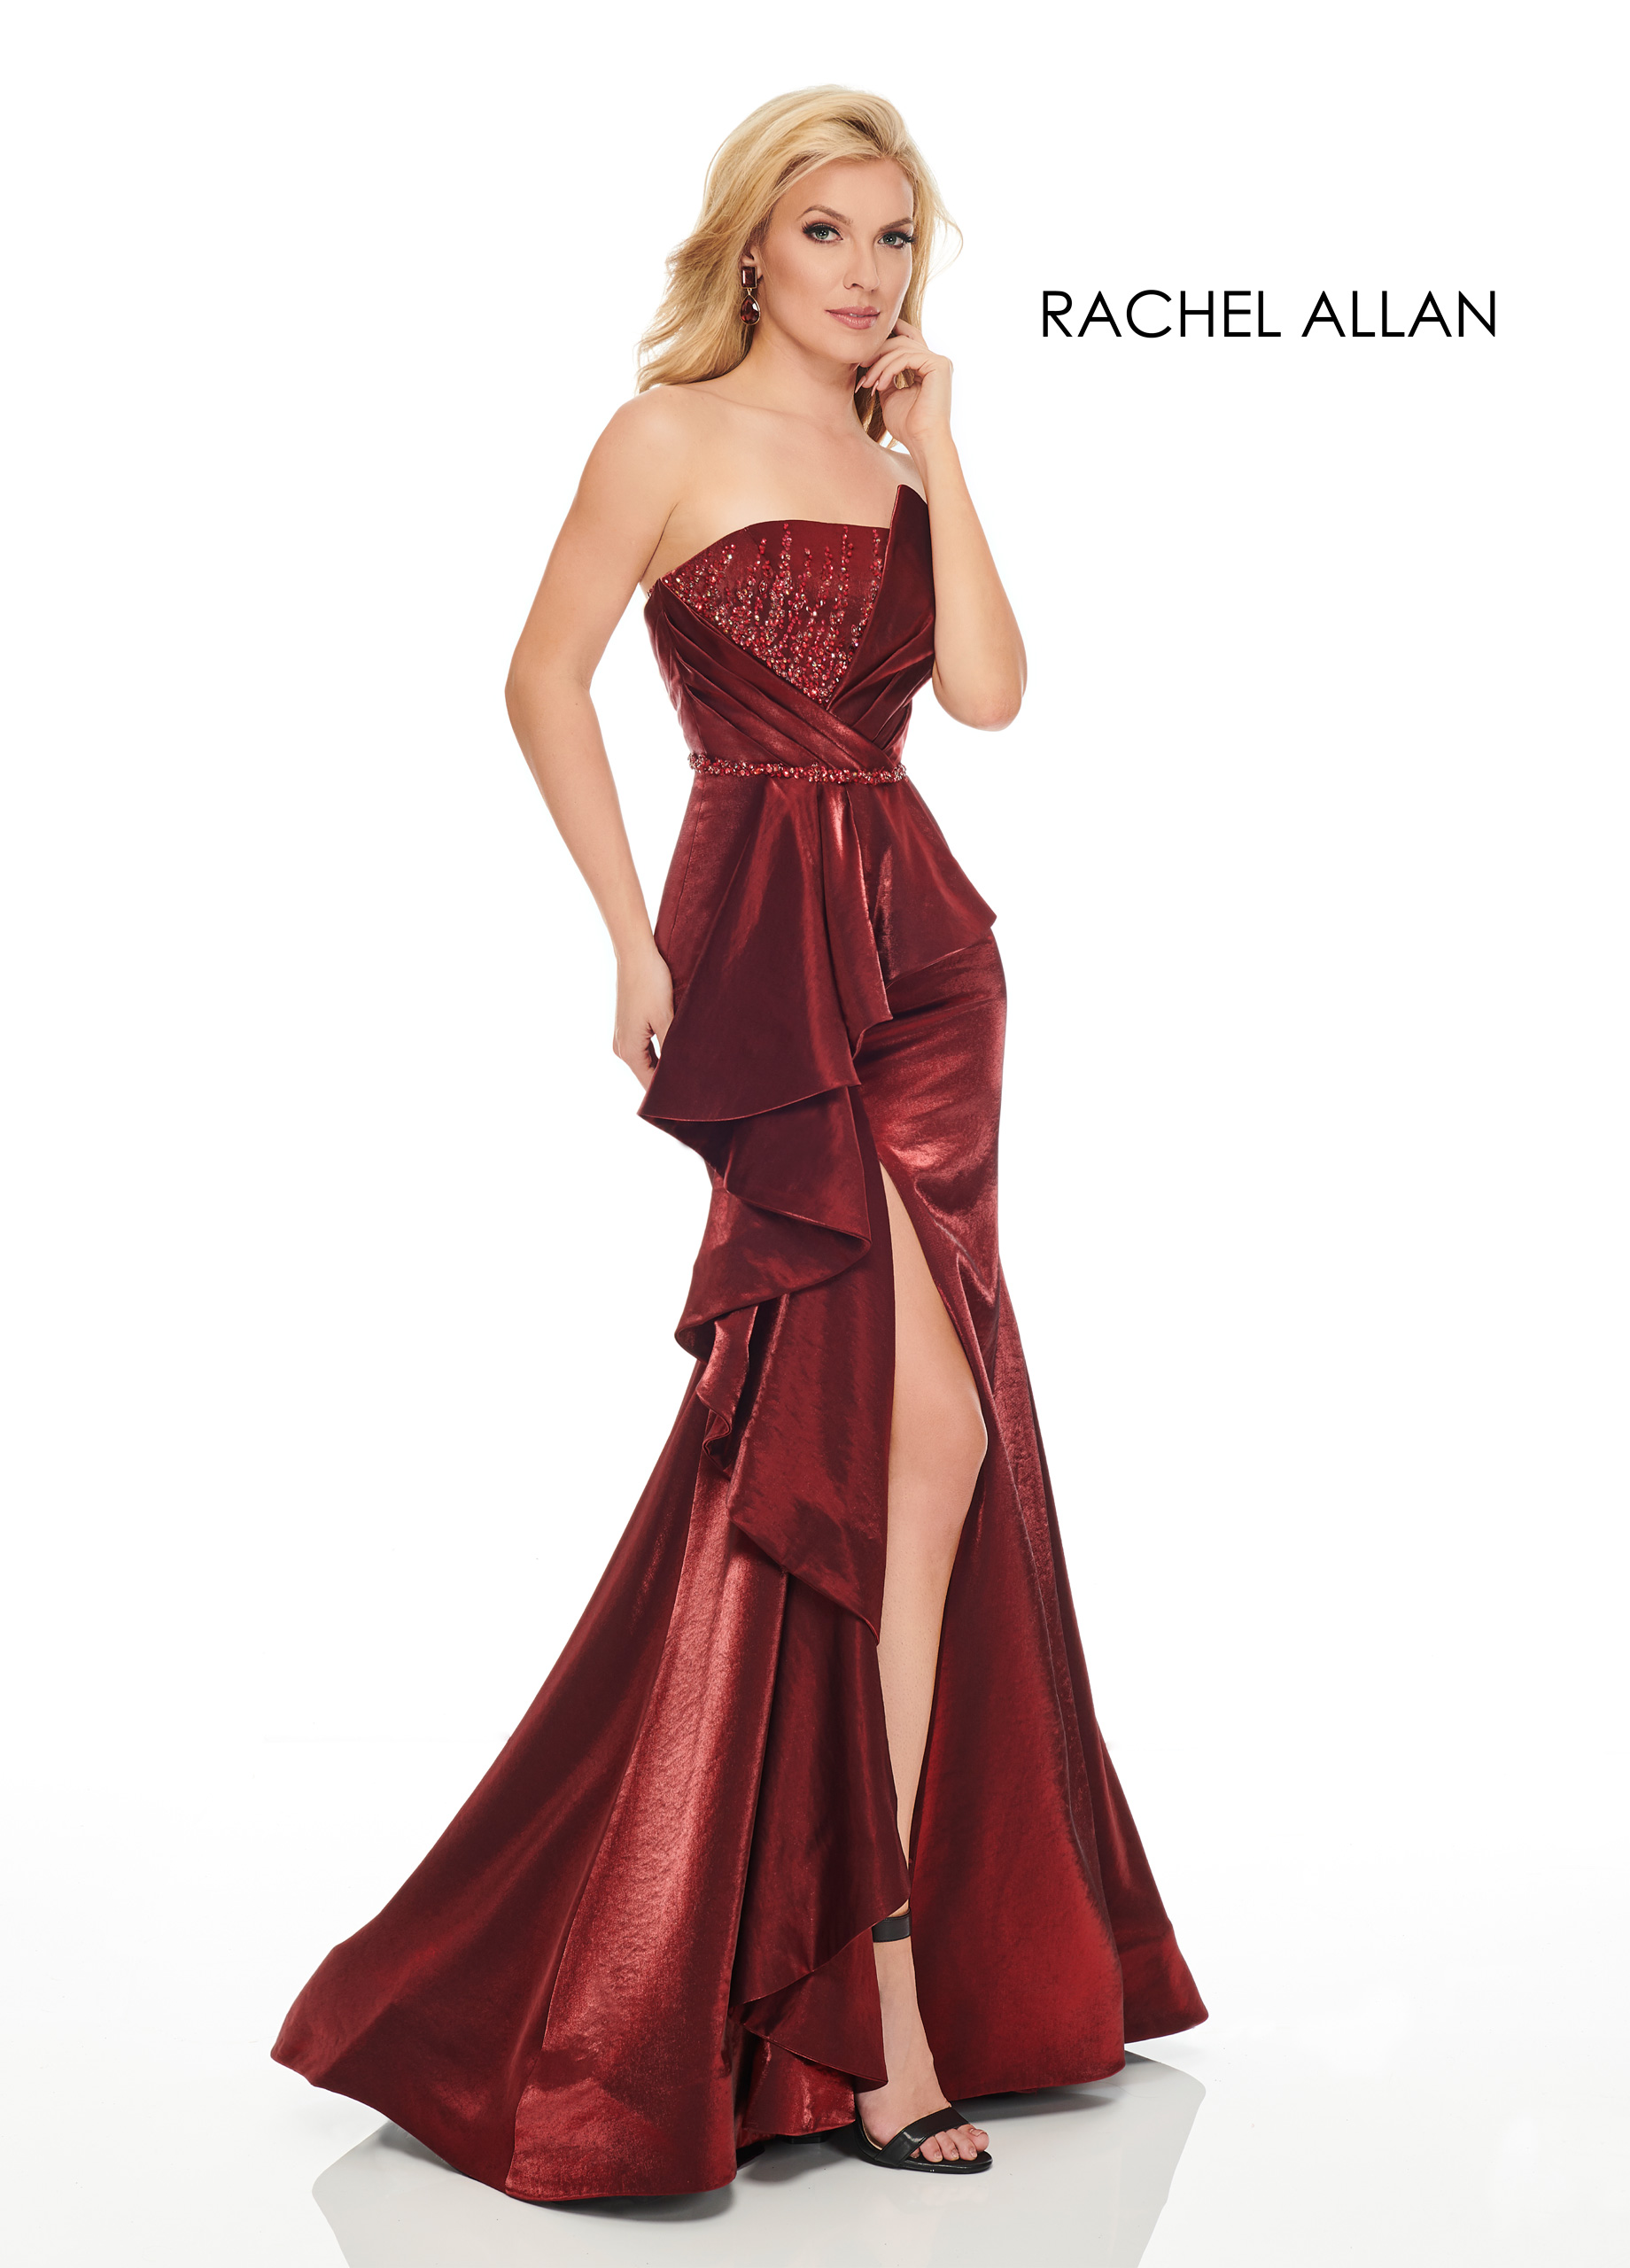 Strapless Mermaid Couture Dresses in Red Color